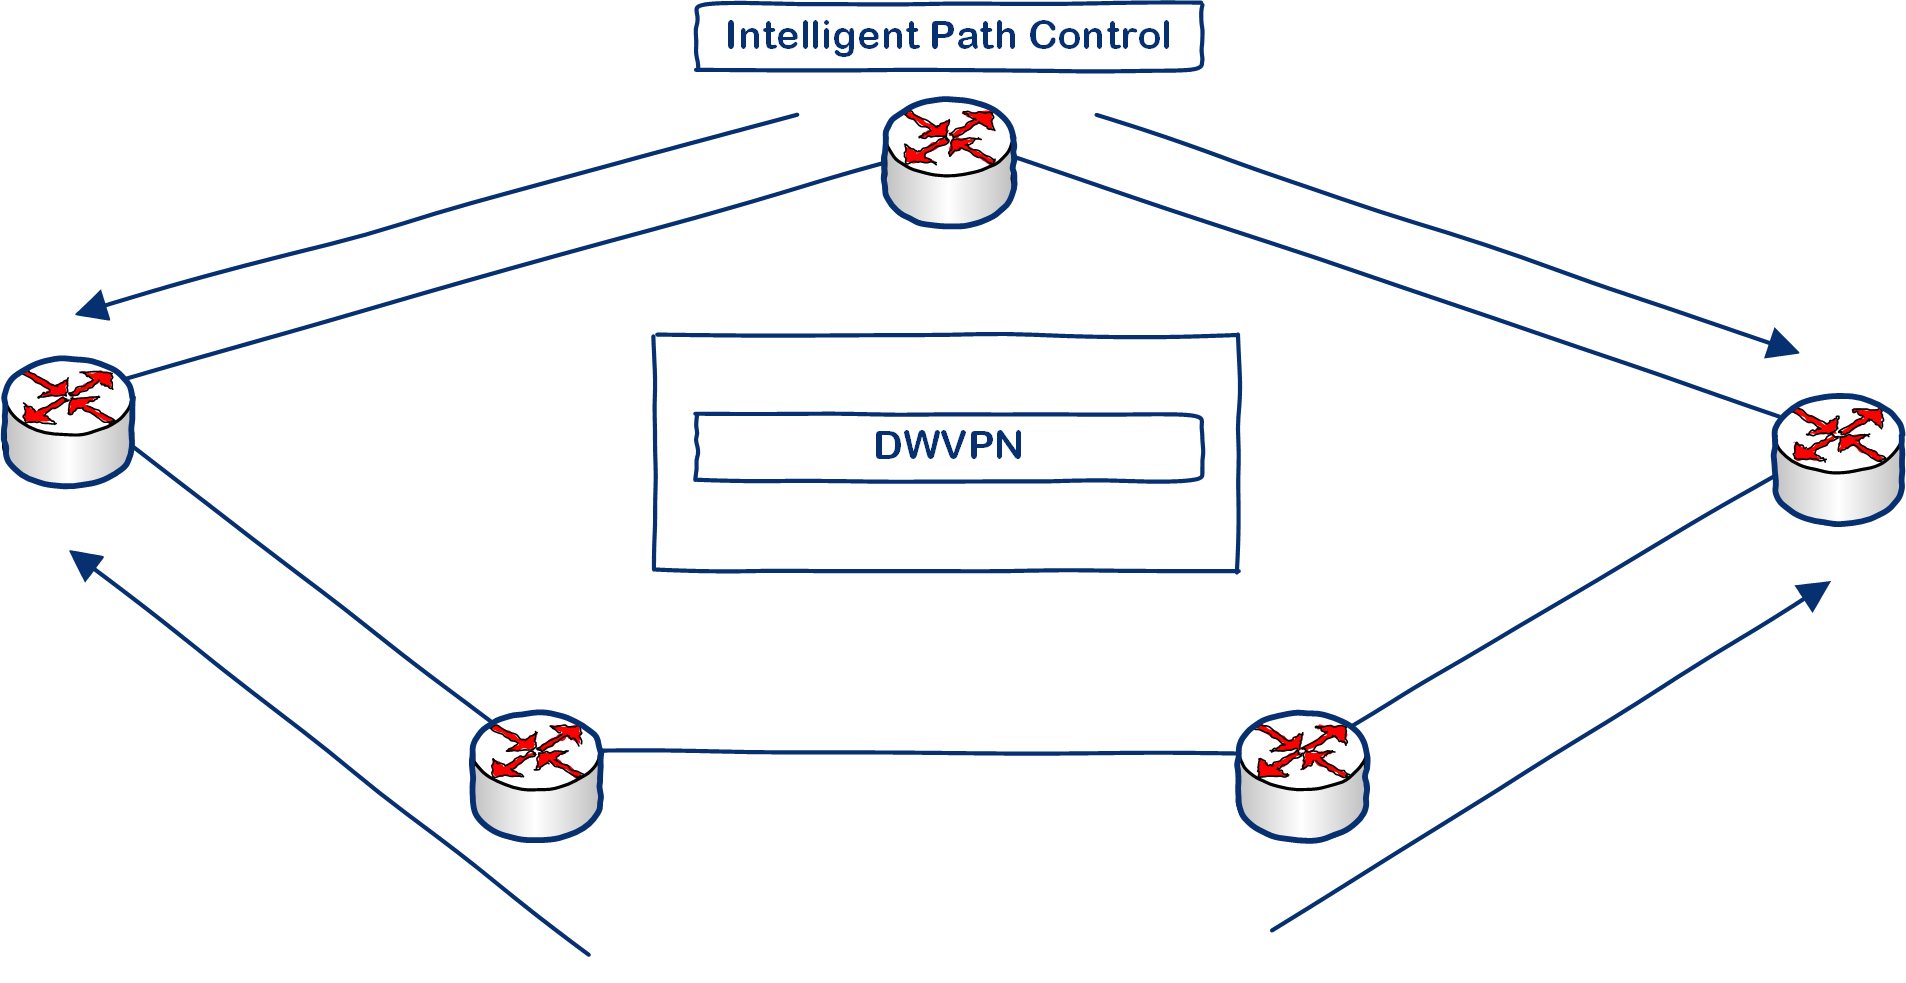 SD-WAN Intelligent Path Control